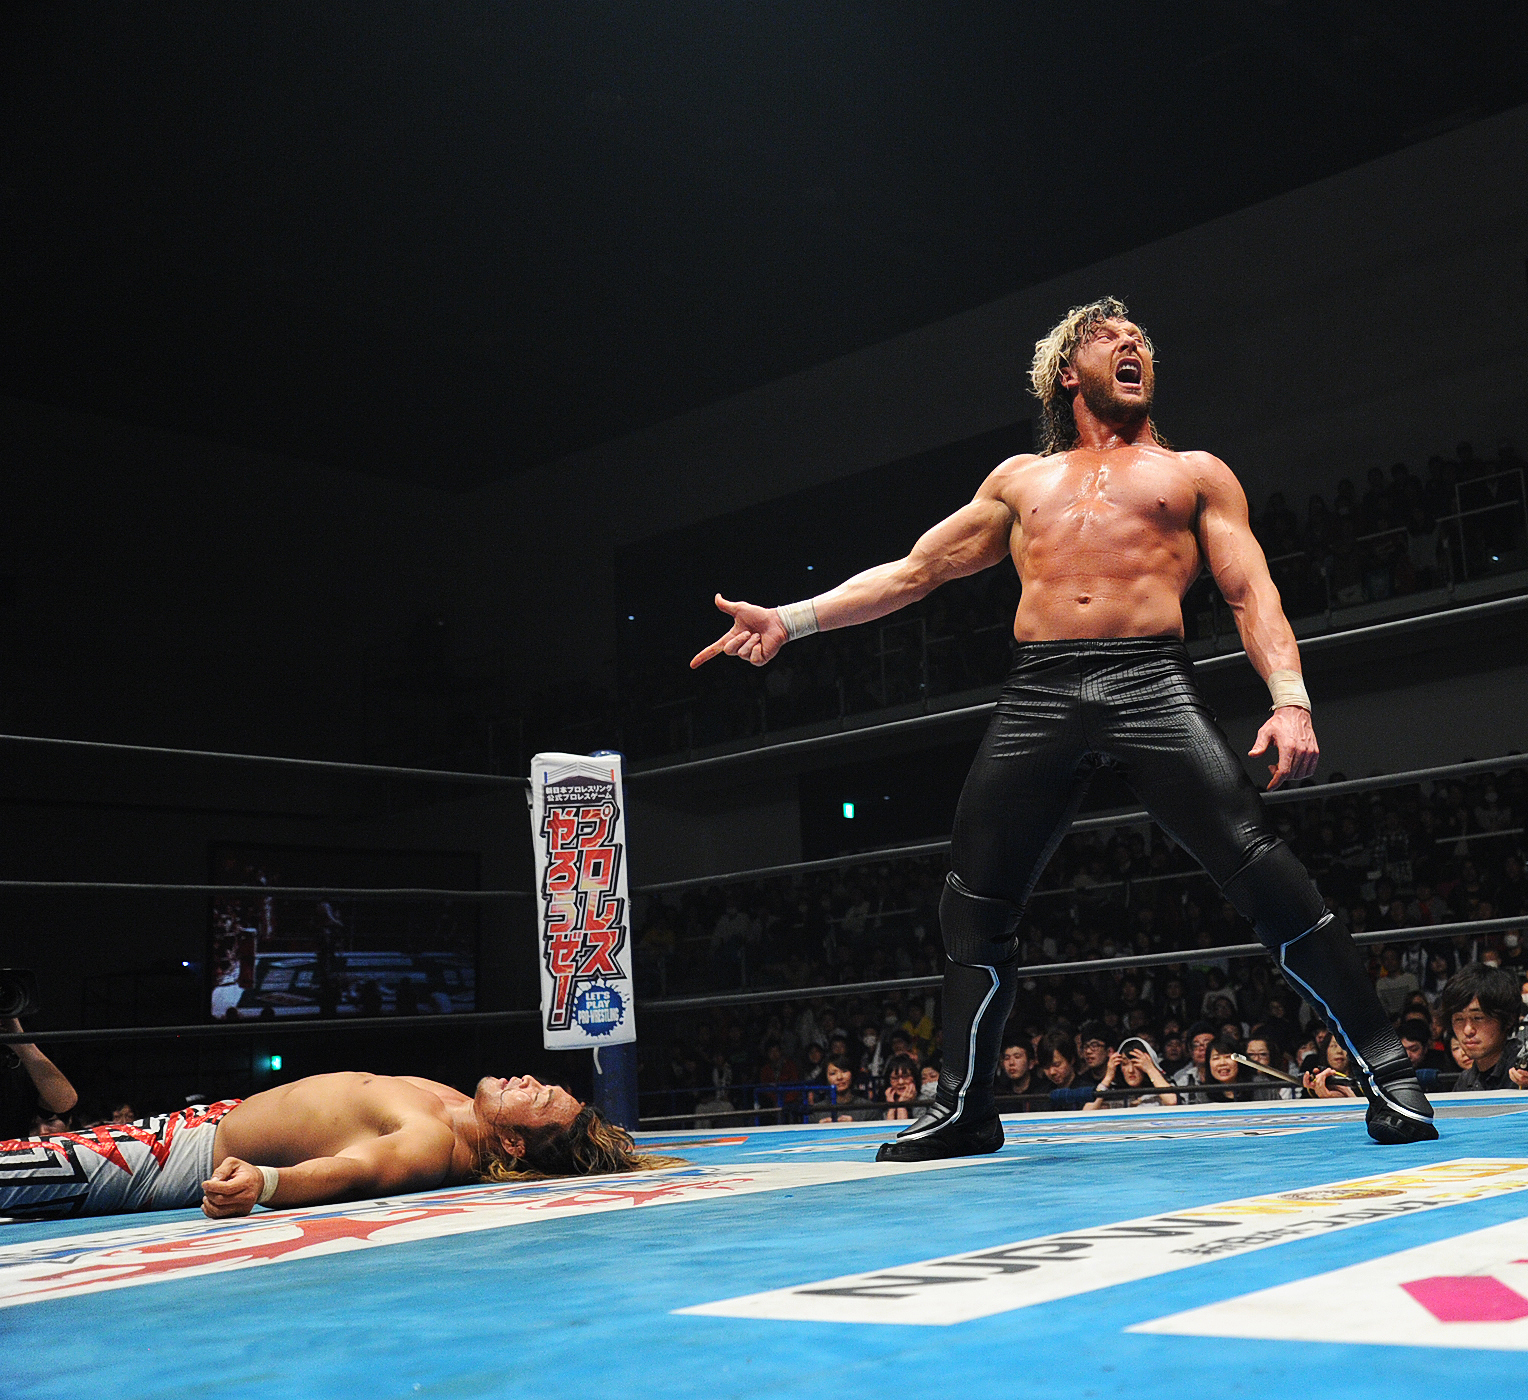 Kenny Omega Has Conquered Japan, Now He Wants the New Day